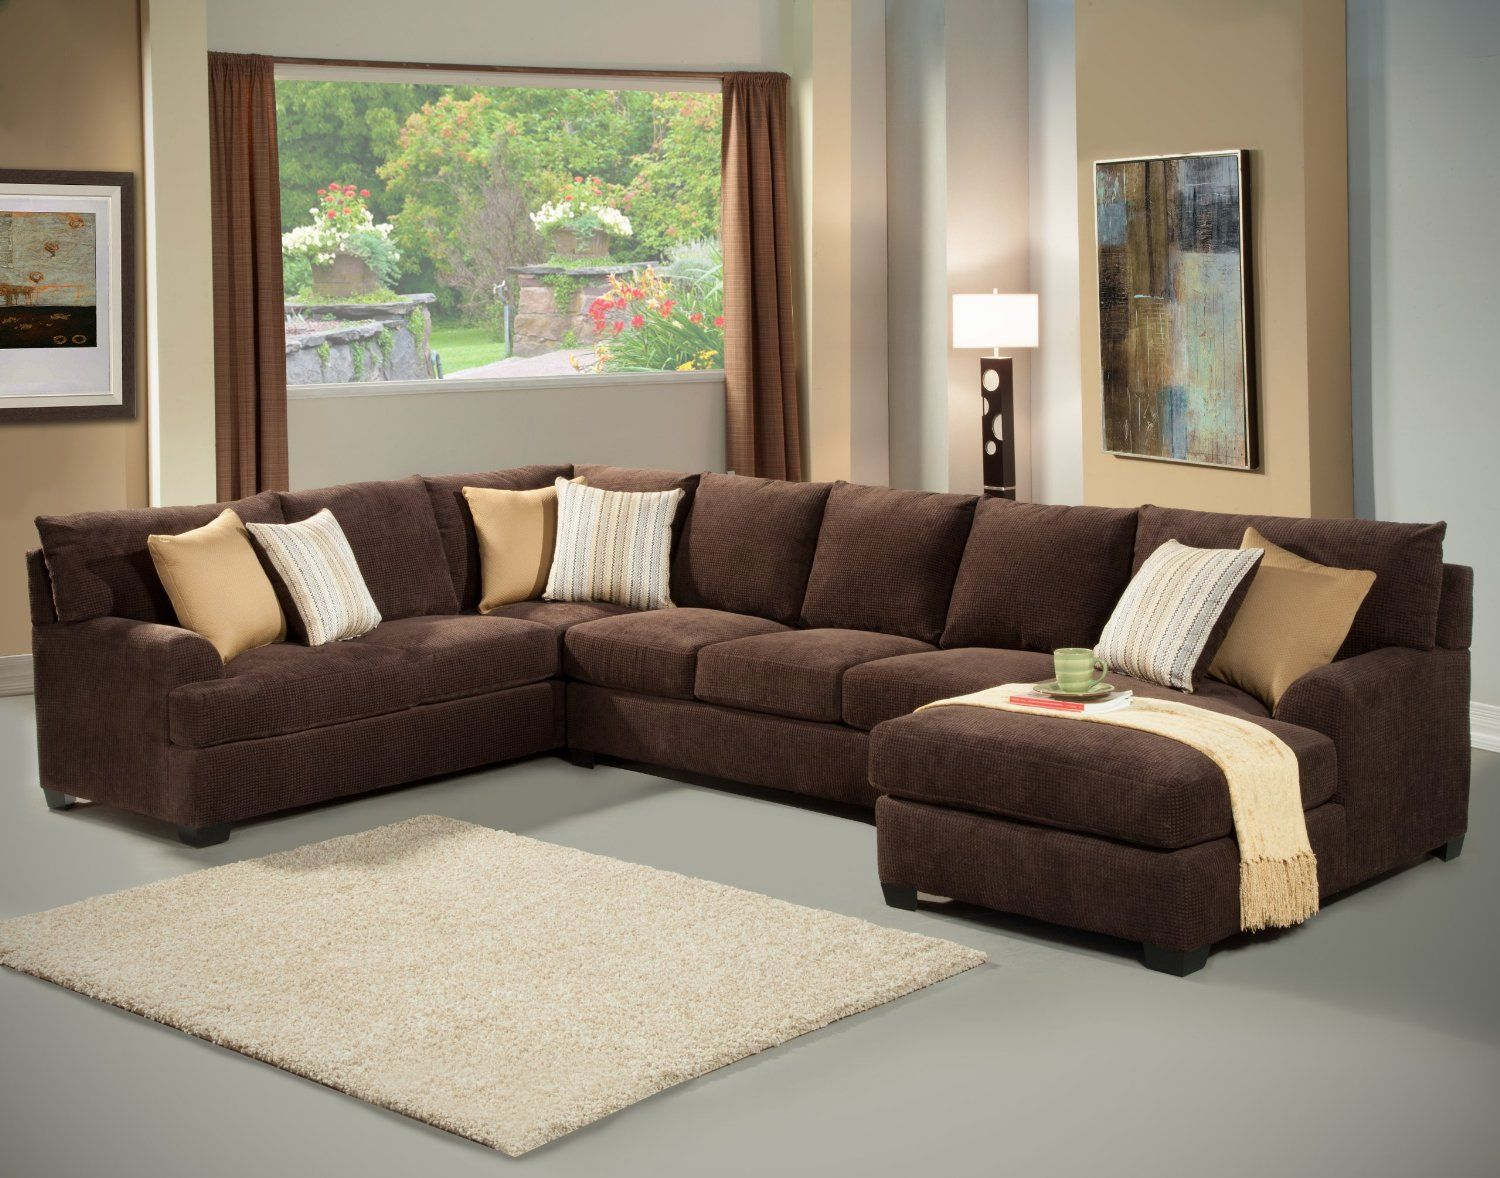 Cool Brown Sectional Couch Great Brown Sectional Couch 38 About